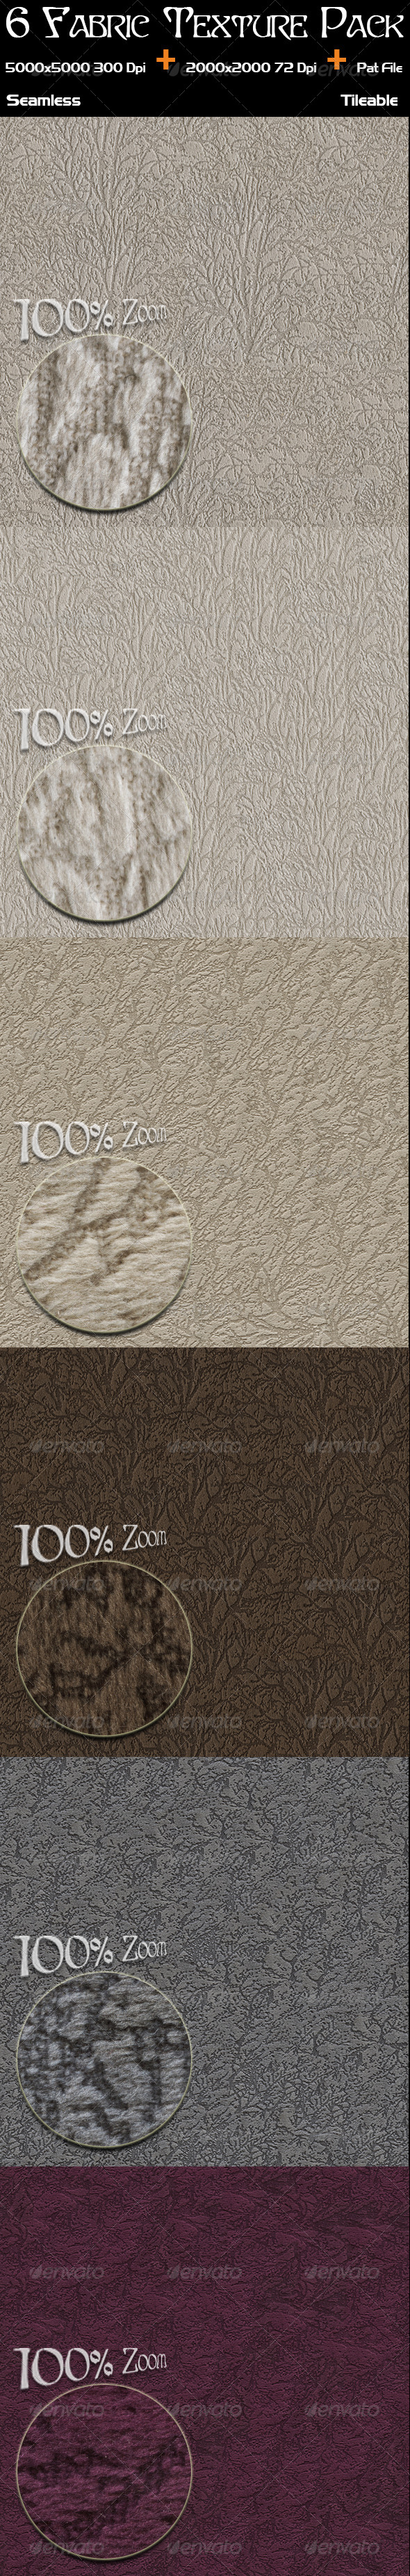 GraphicRiver 6 Fabric Texture Pack 4483351